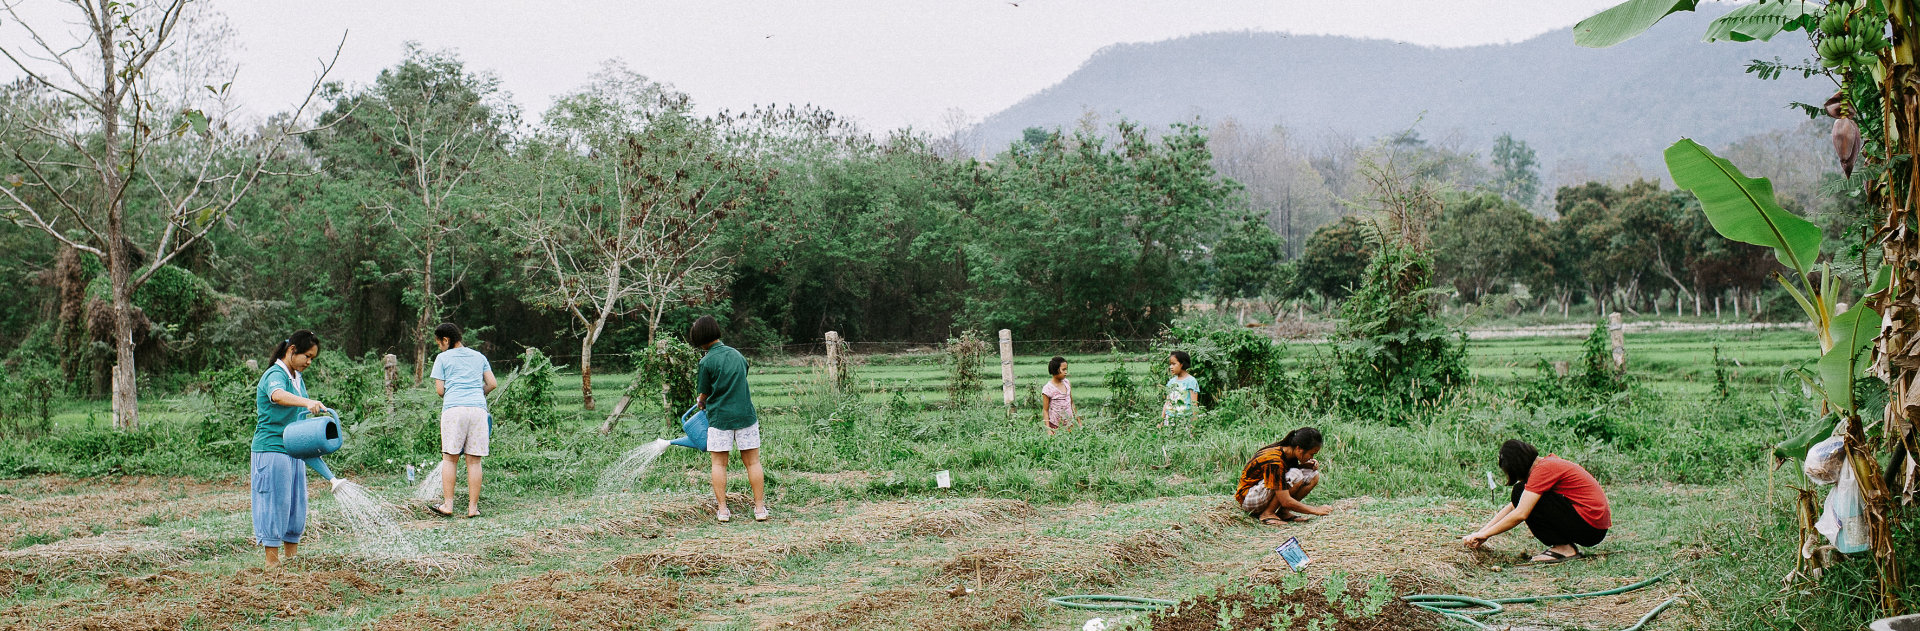 A group of people farming